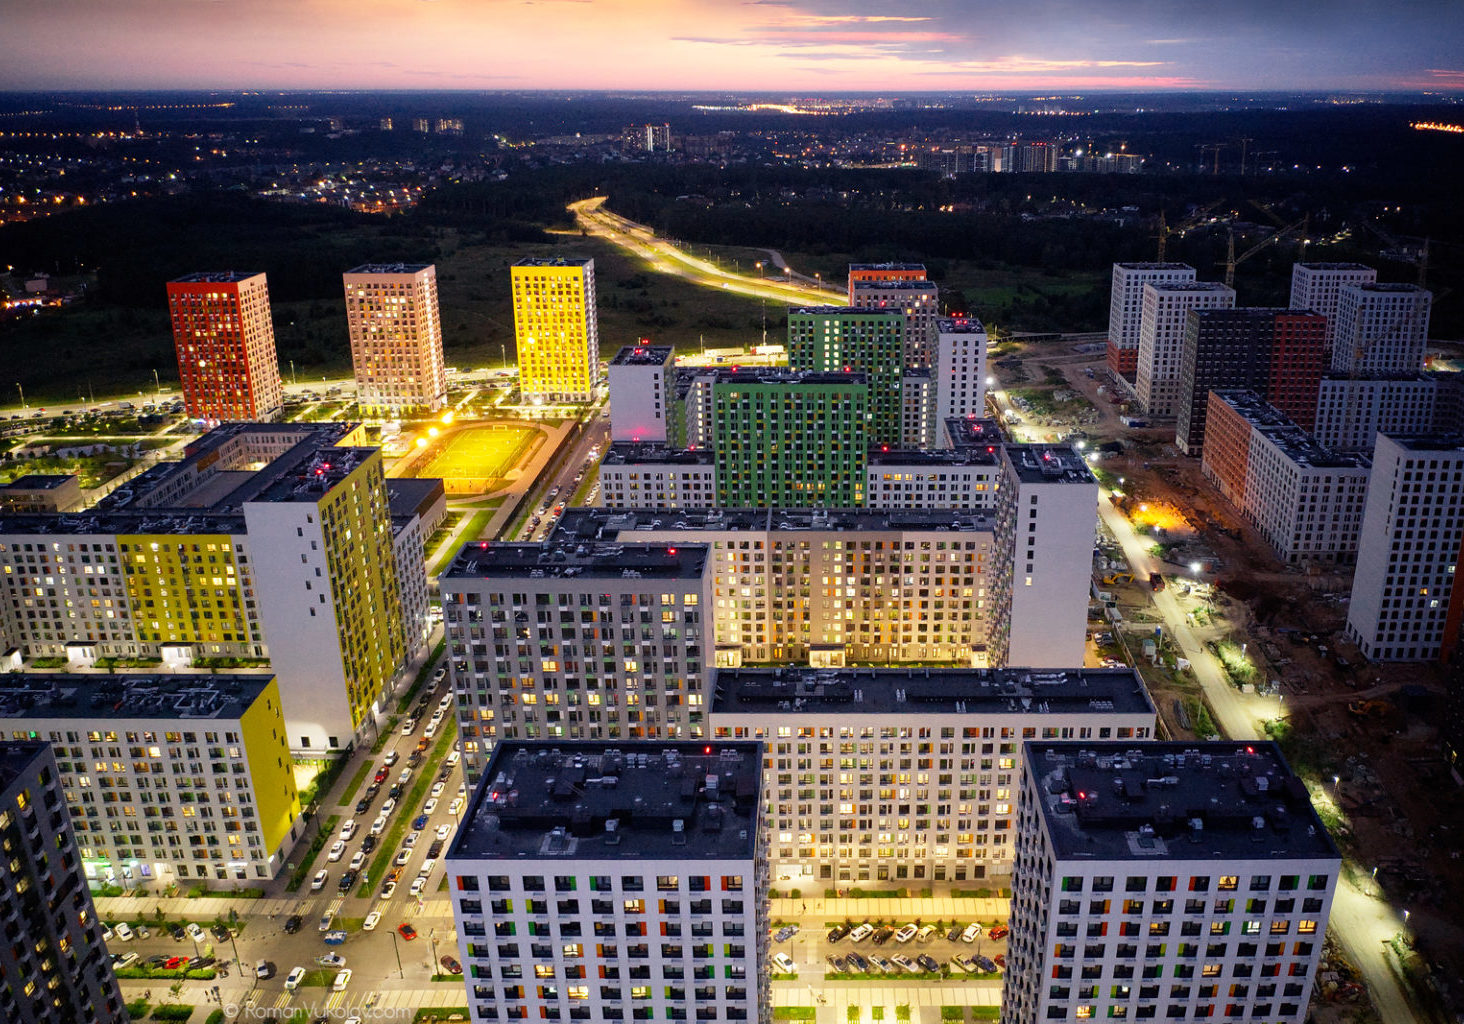 Architectural photography, Aerial photogrpahy. Architectural photographer Roman Vukolov.